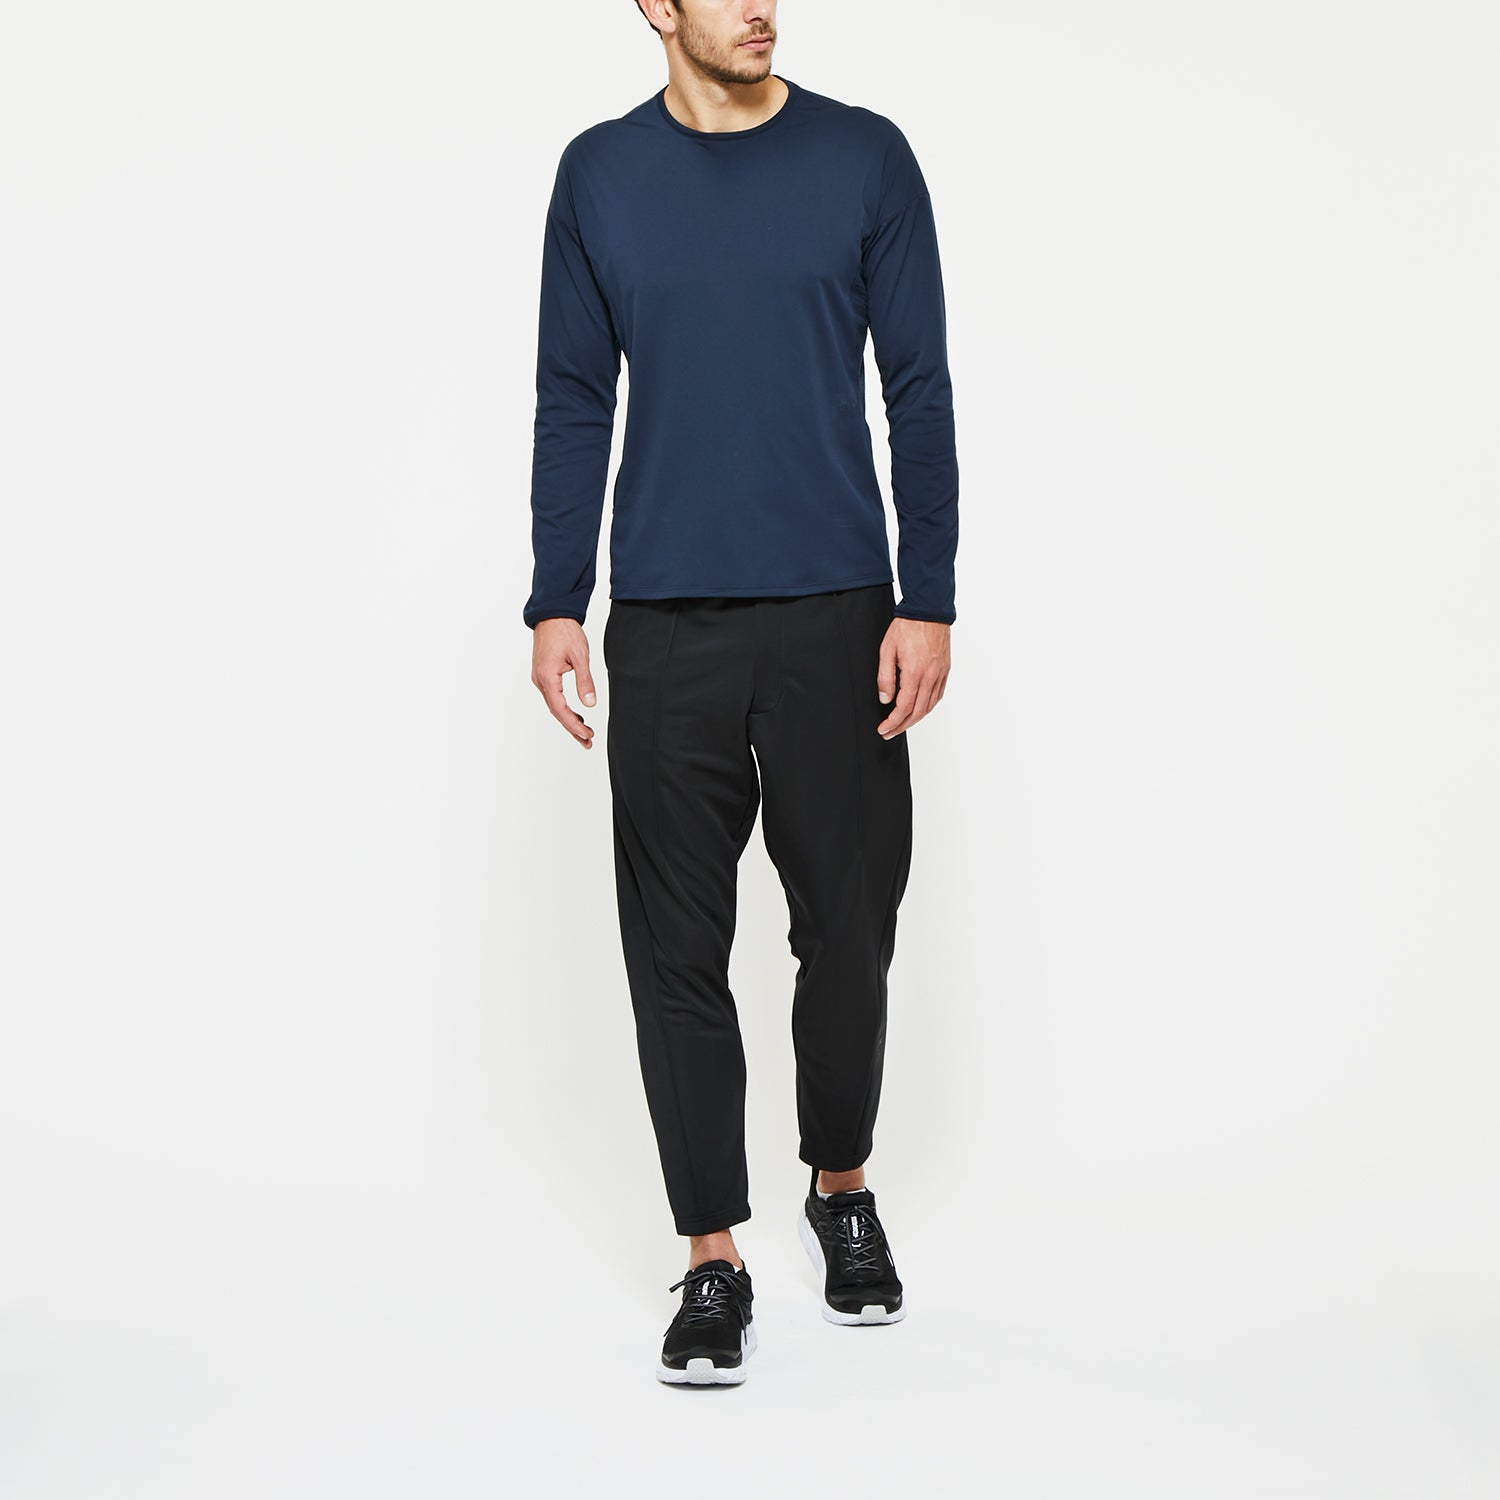 FLEECE VENTILATION CREW NECK SHIRT